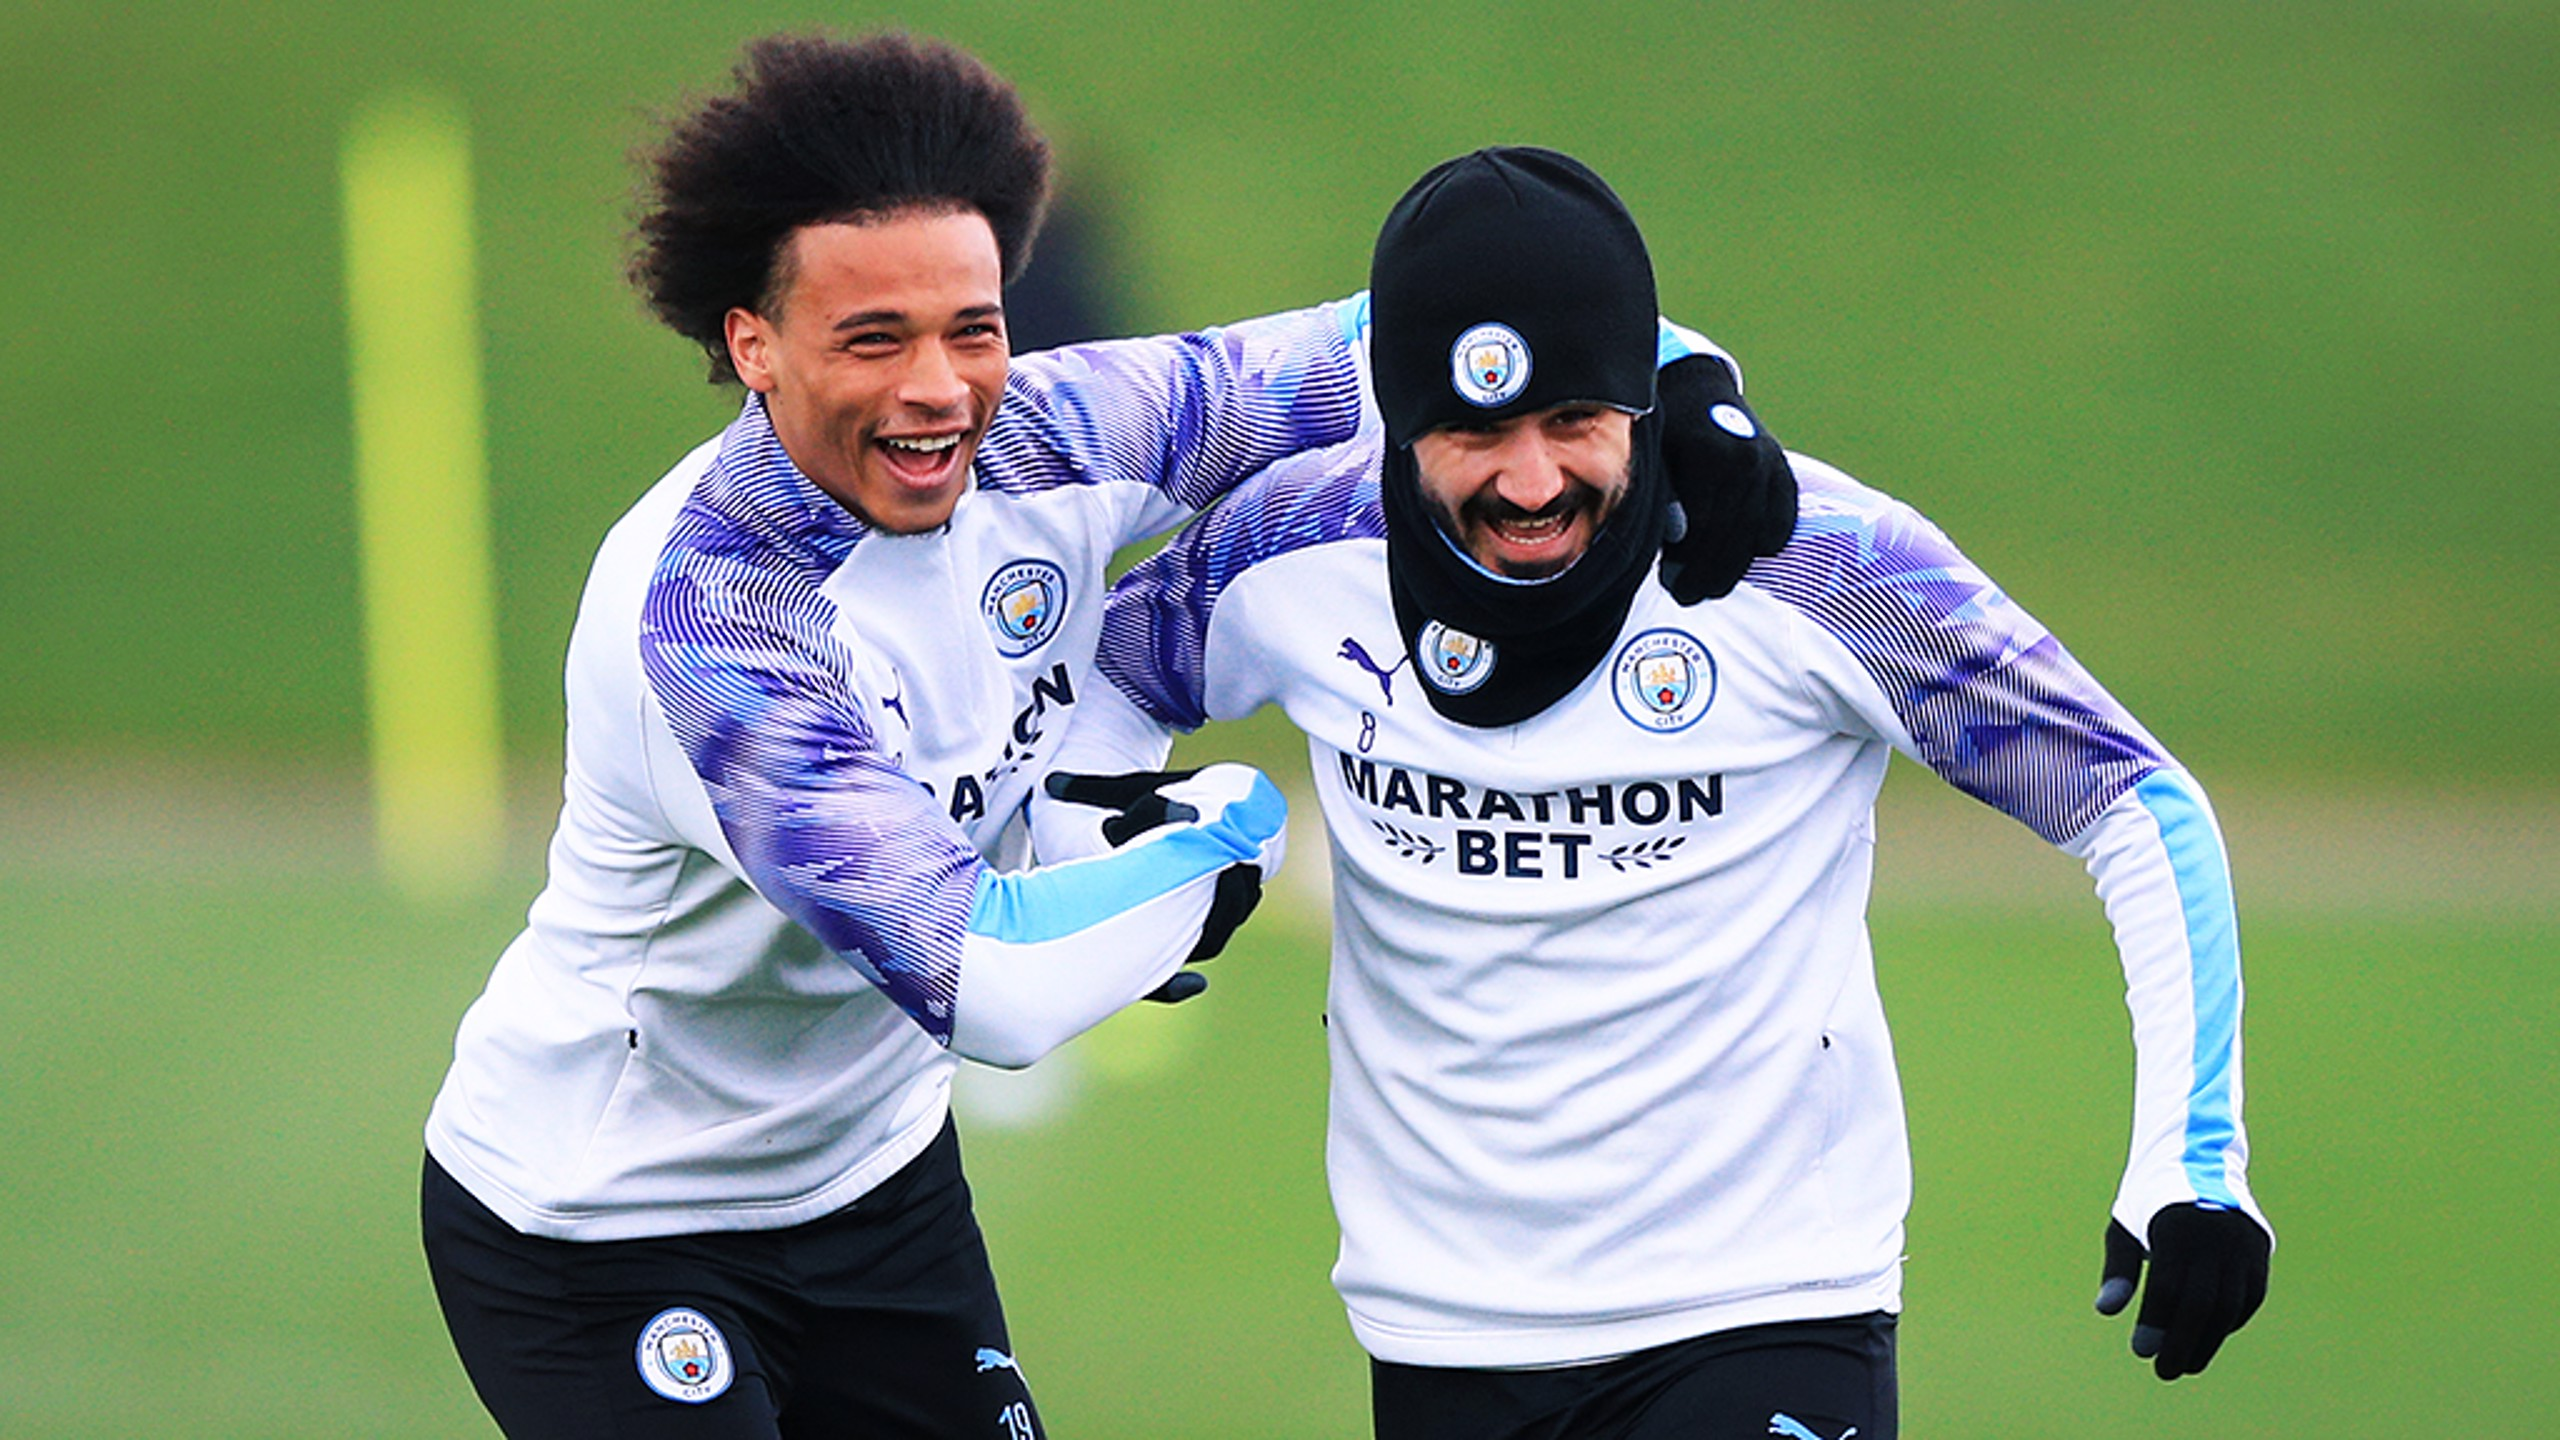 GOTCHA: Leroy Sane catches Ilkay Gundogan.